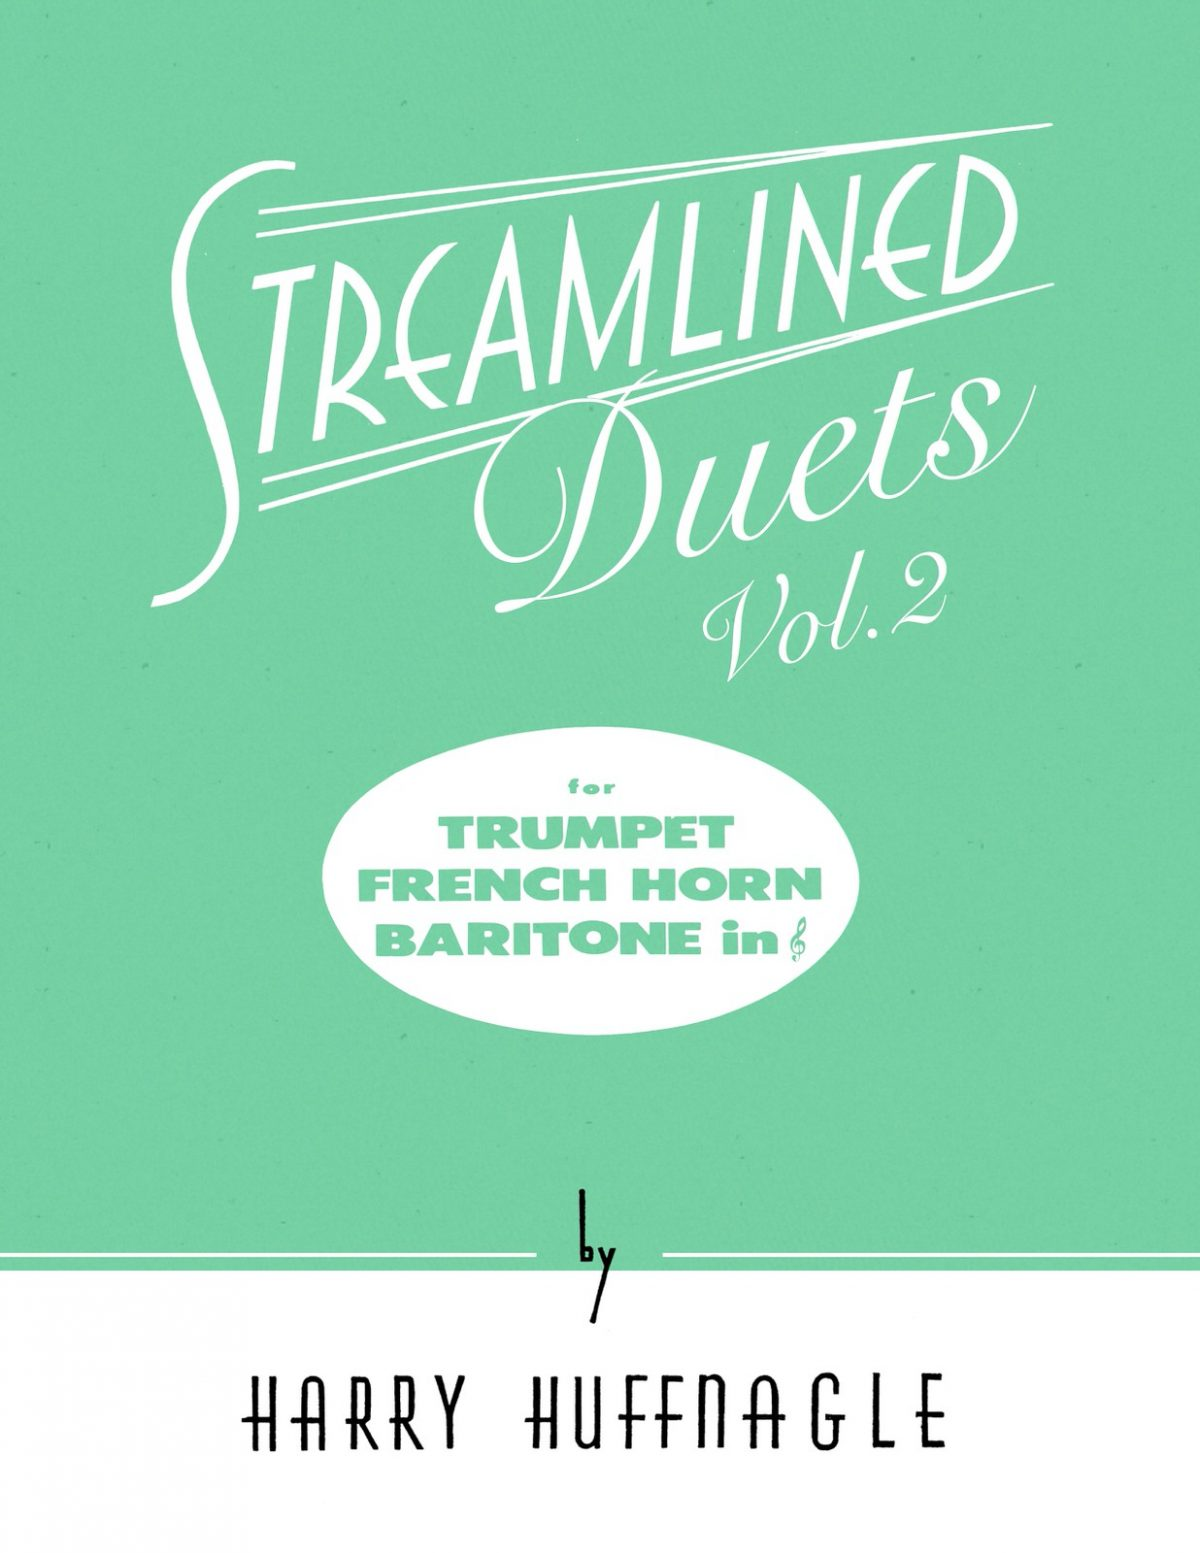 Huffnagle, Streamlined Duets Volume 2-p01